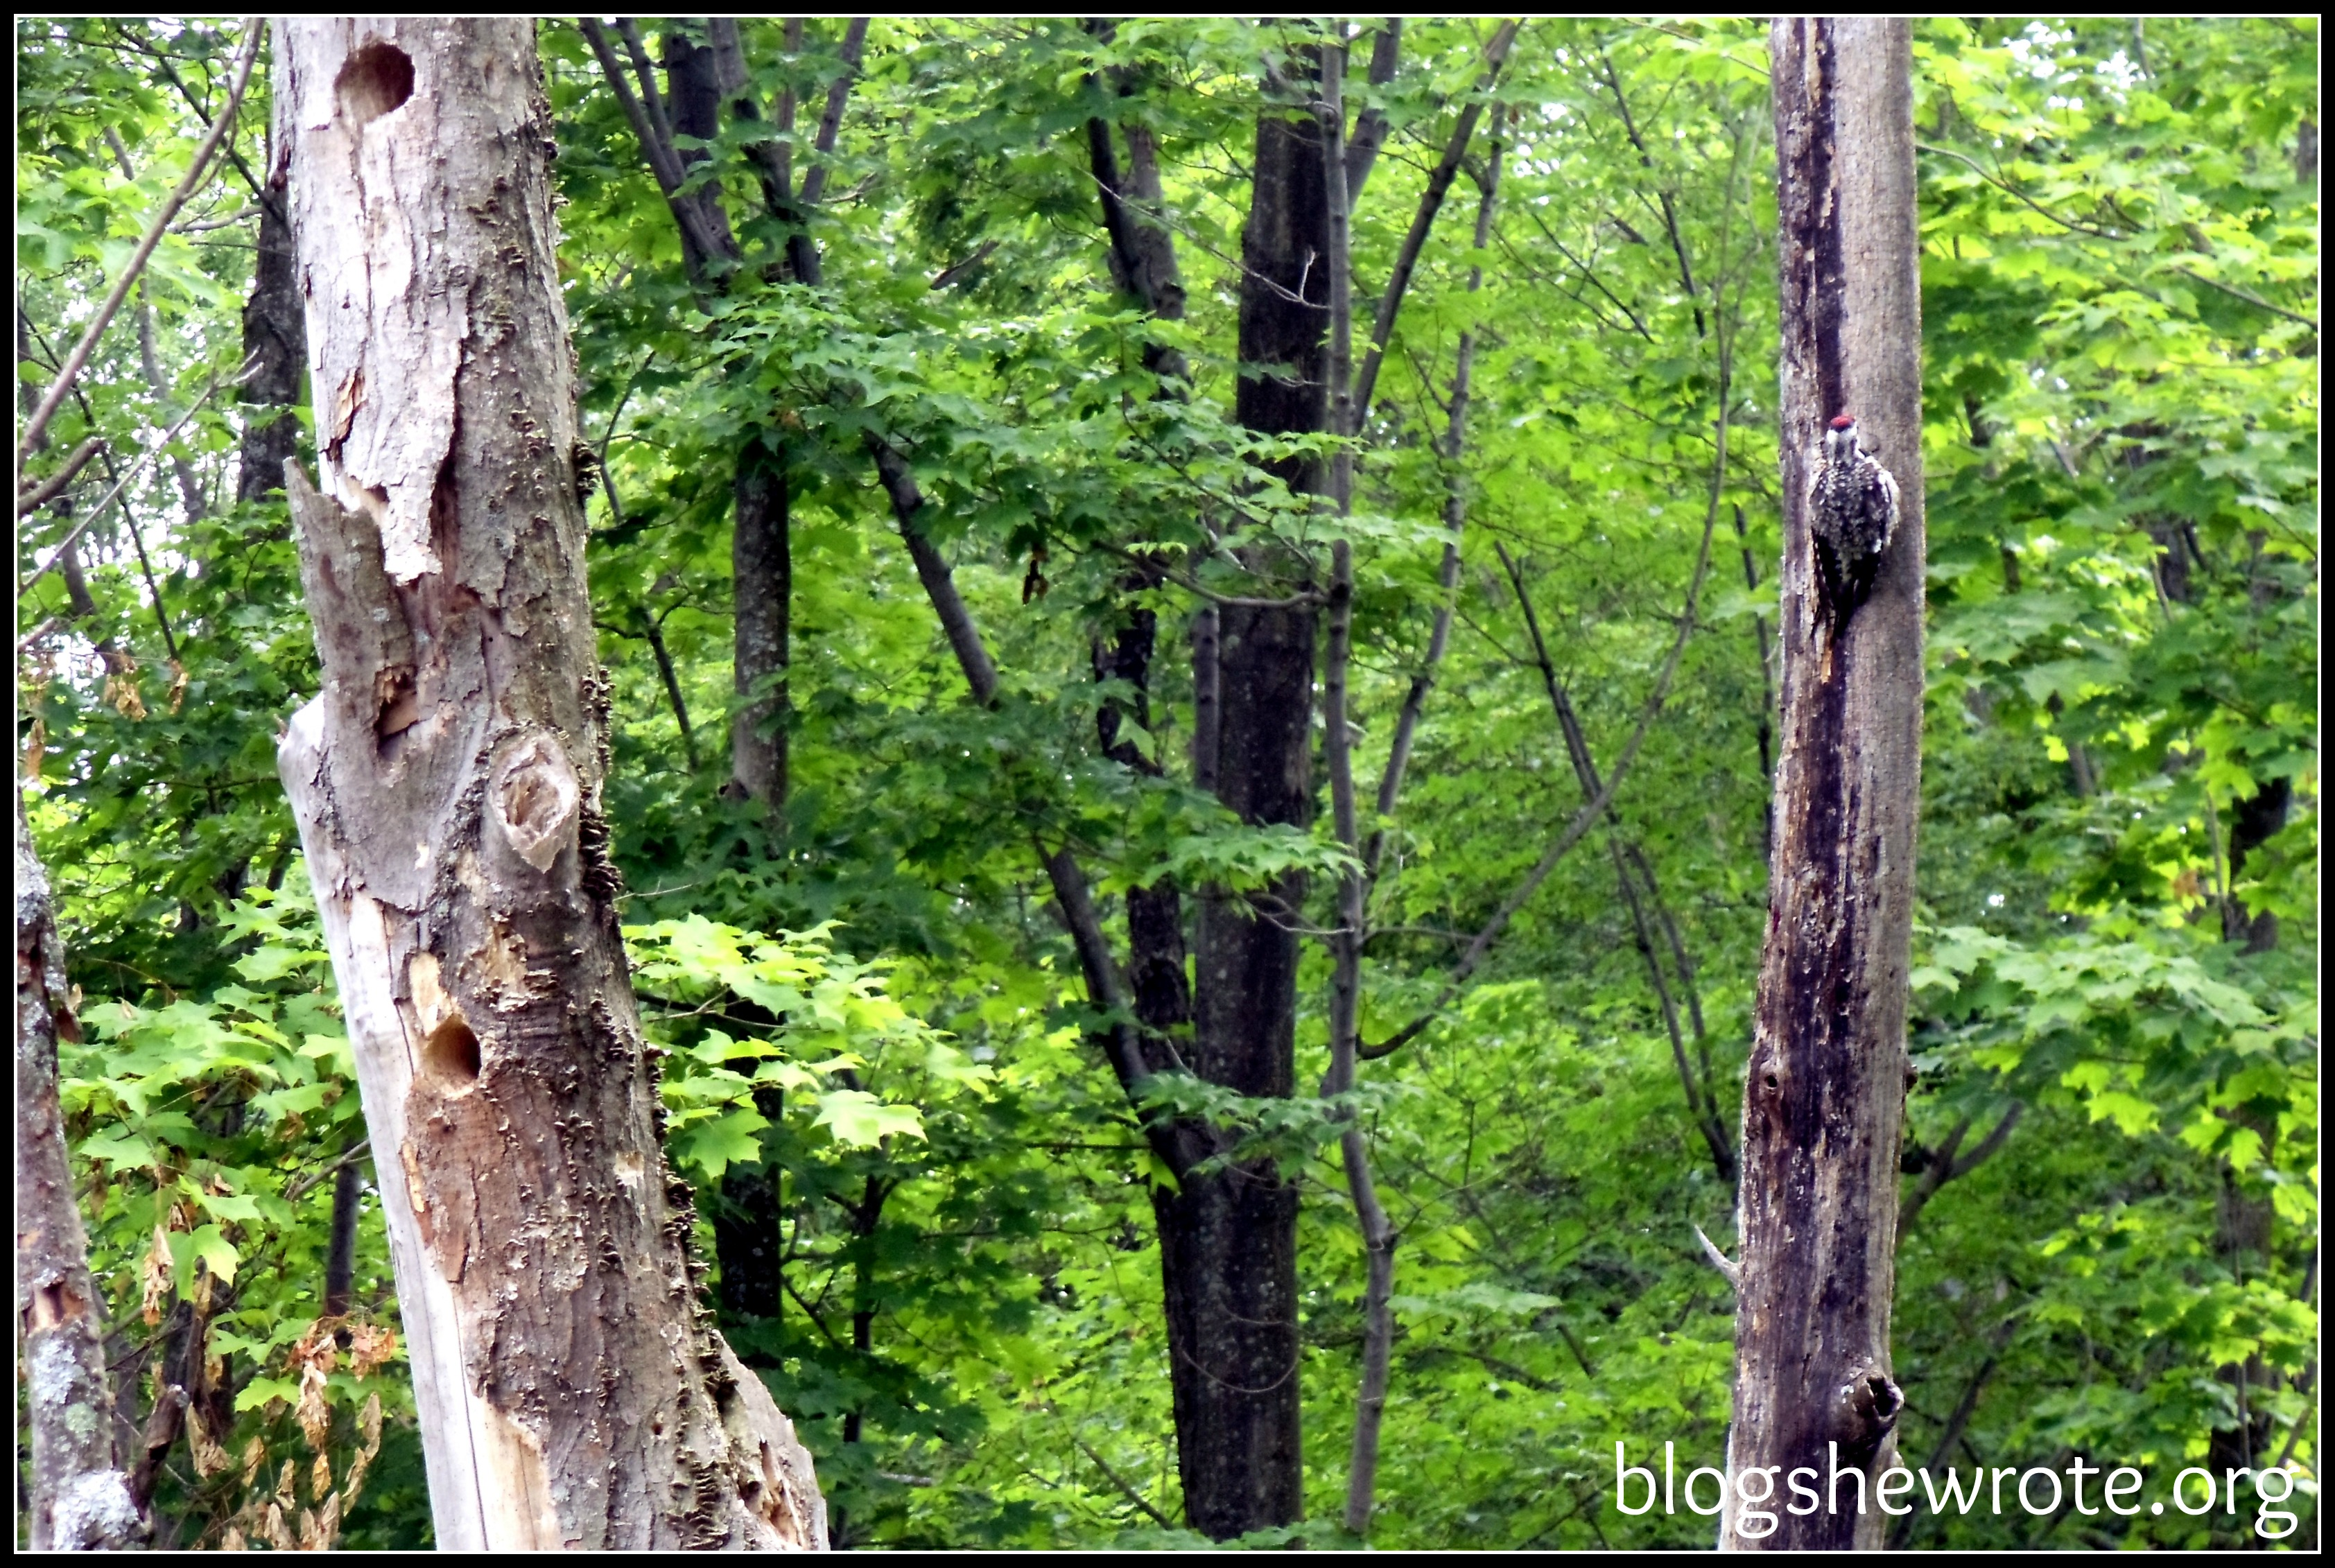 Blog She Wrote: Implementing a Nature Study -  Watch Your Own Backyard